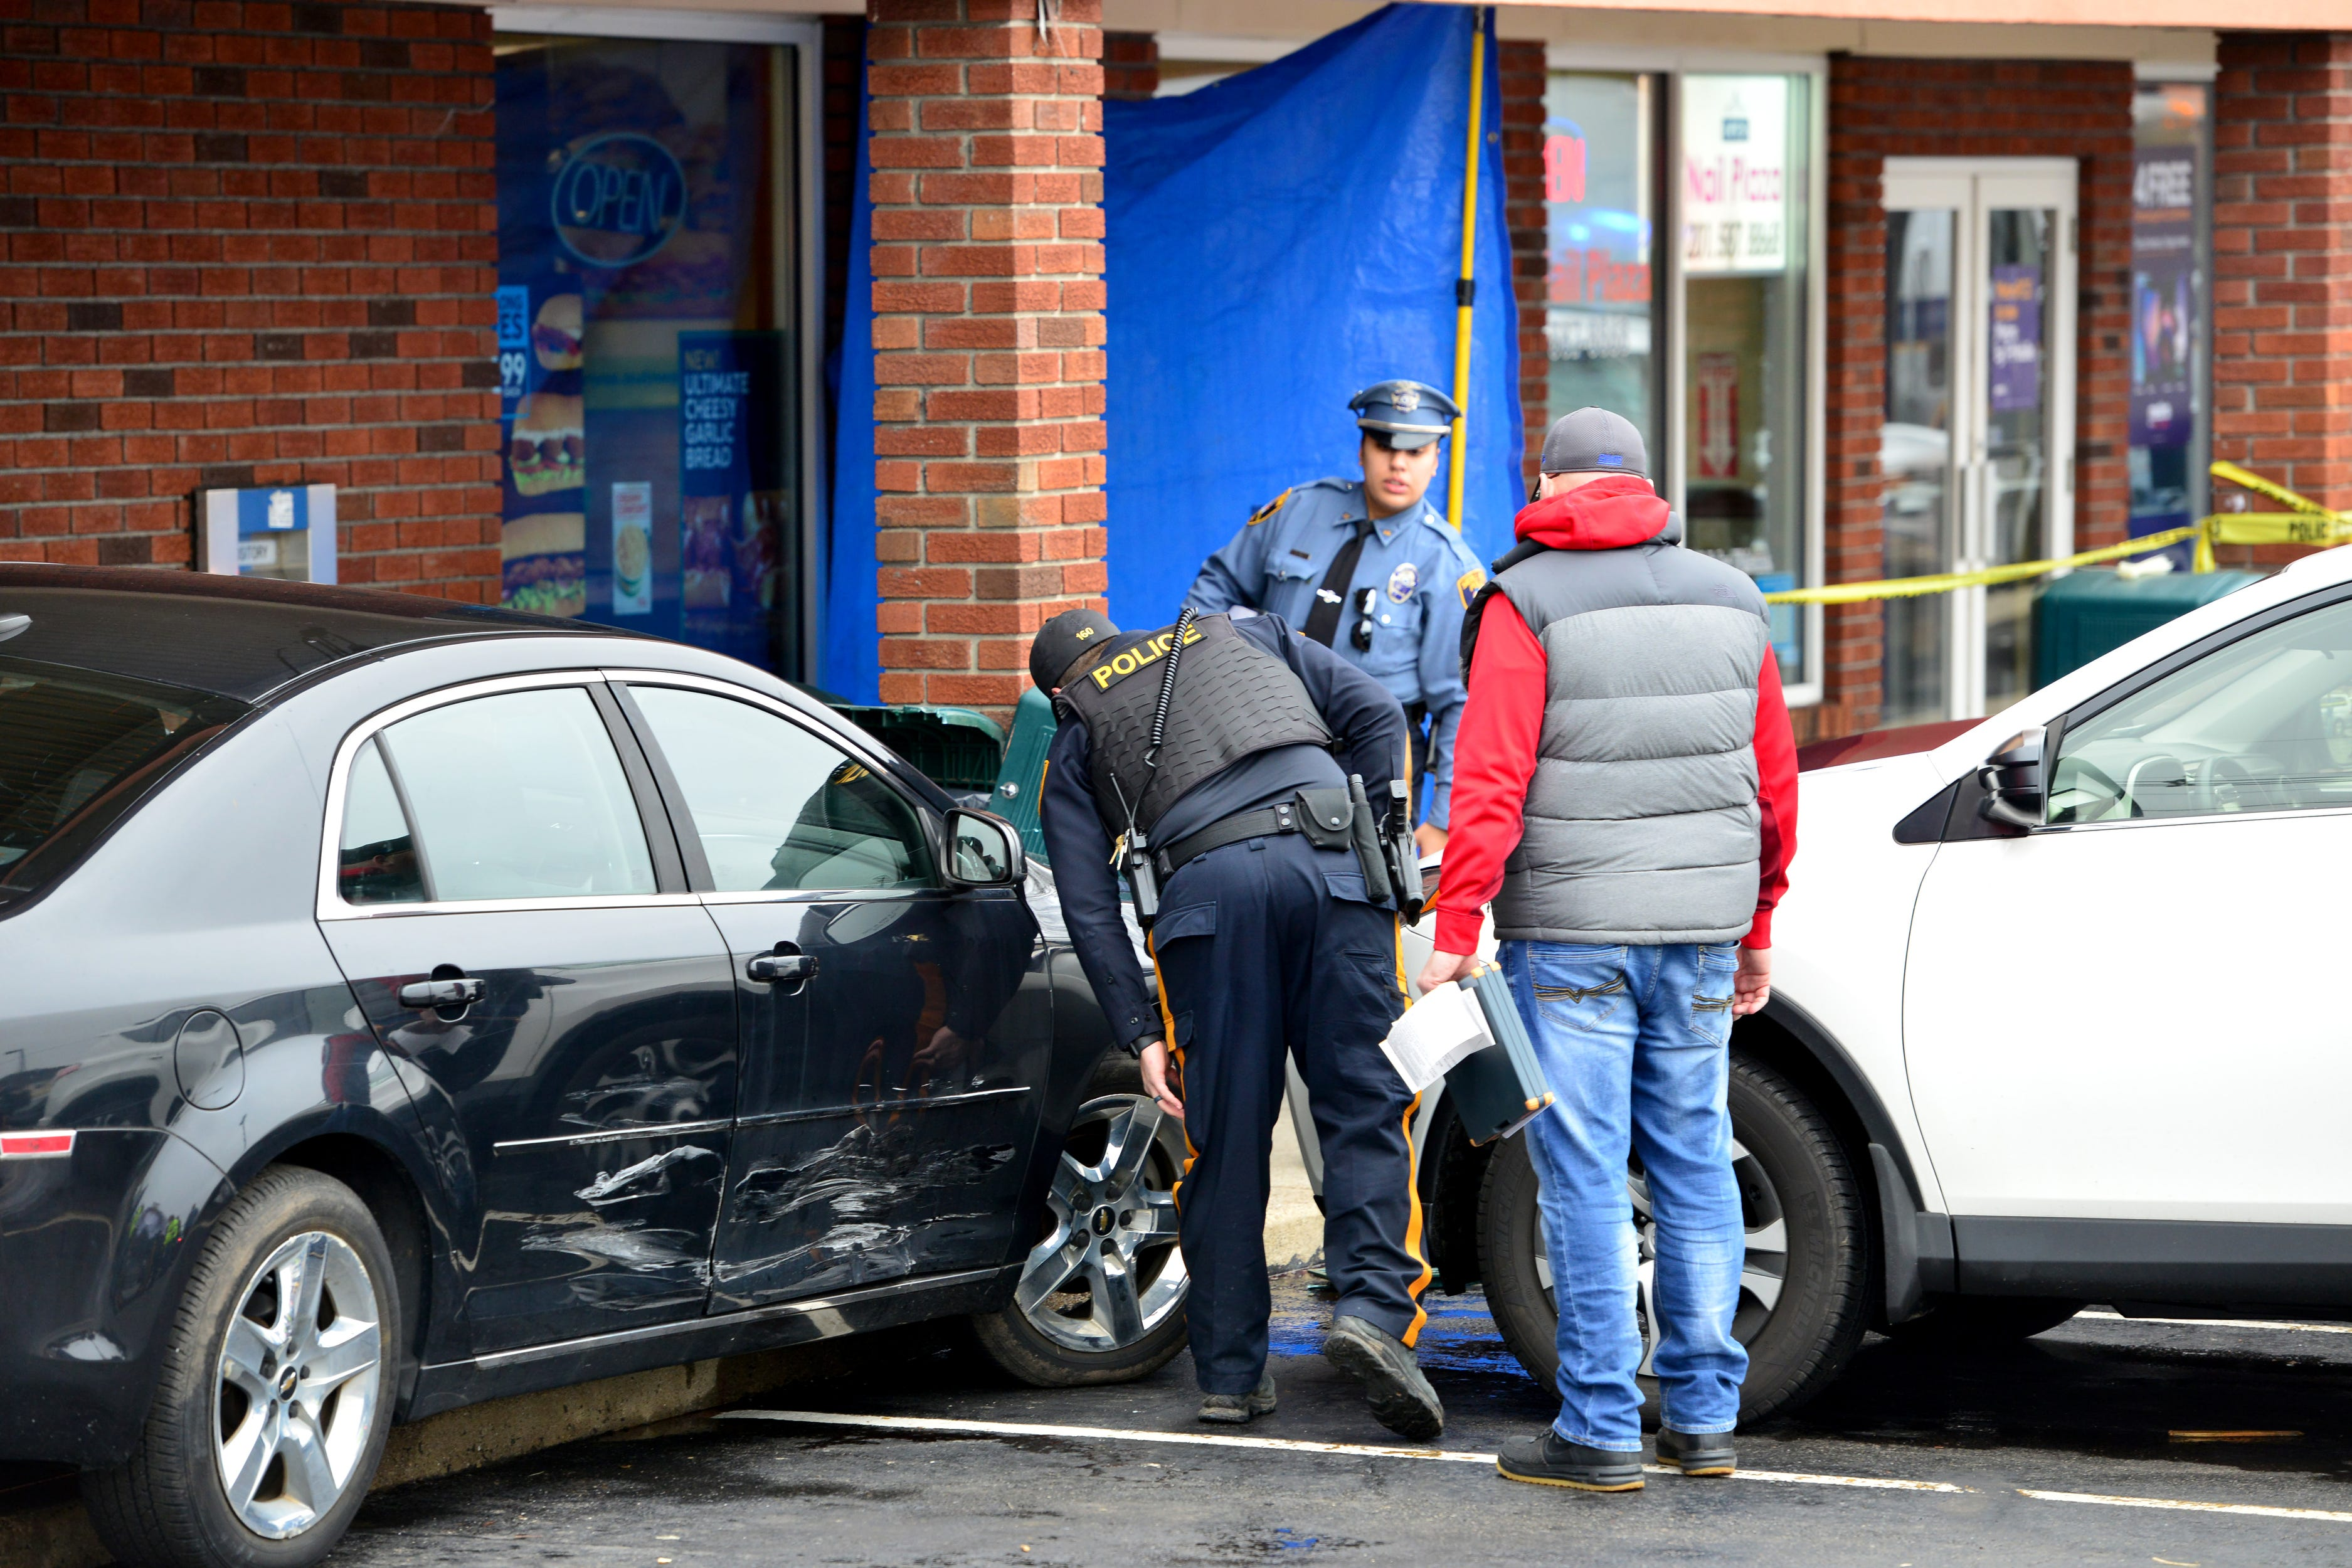 Man struck and killed by car in front of Saddle Brook bank